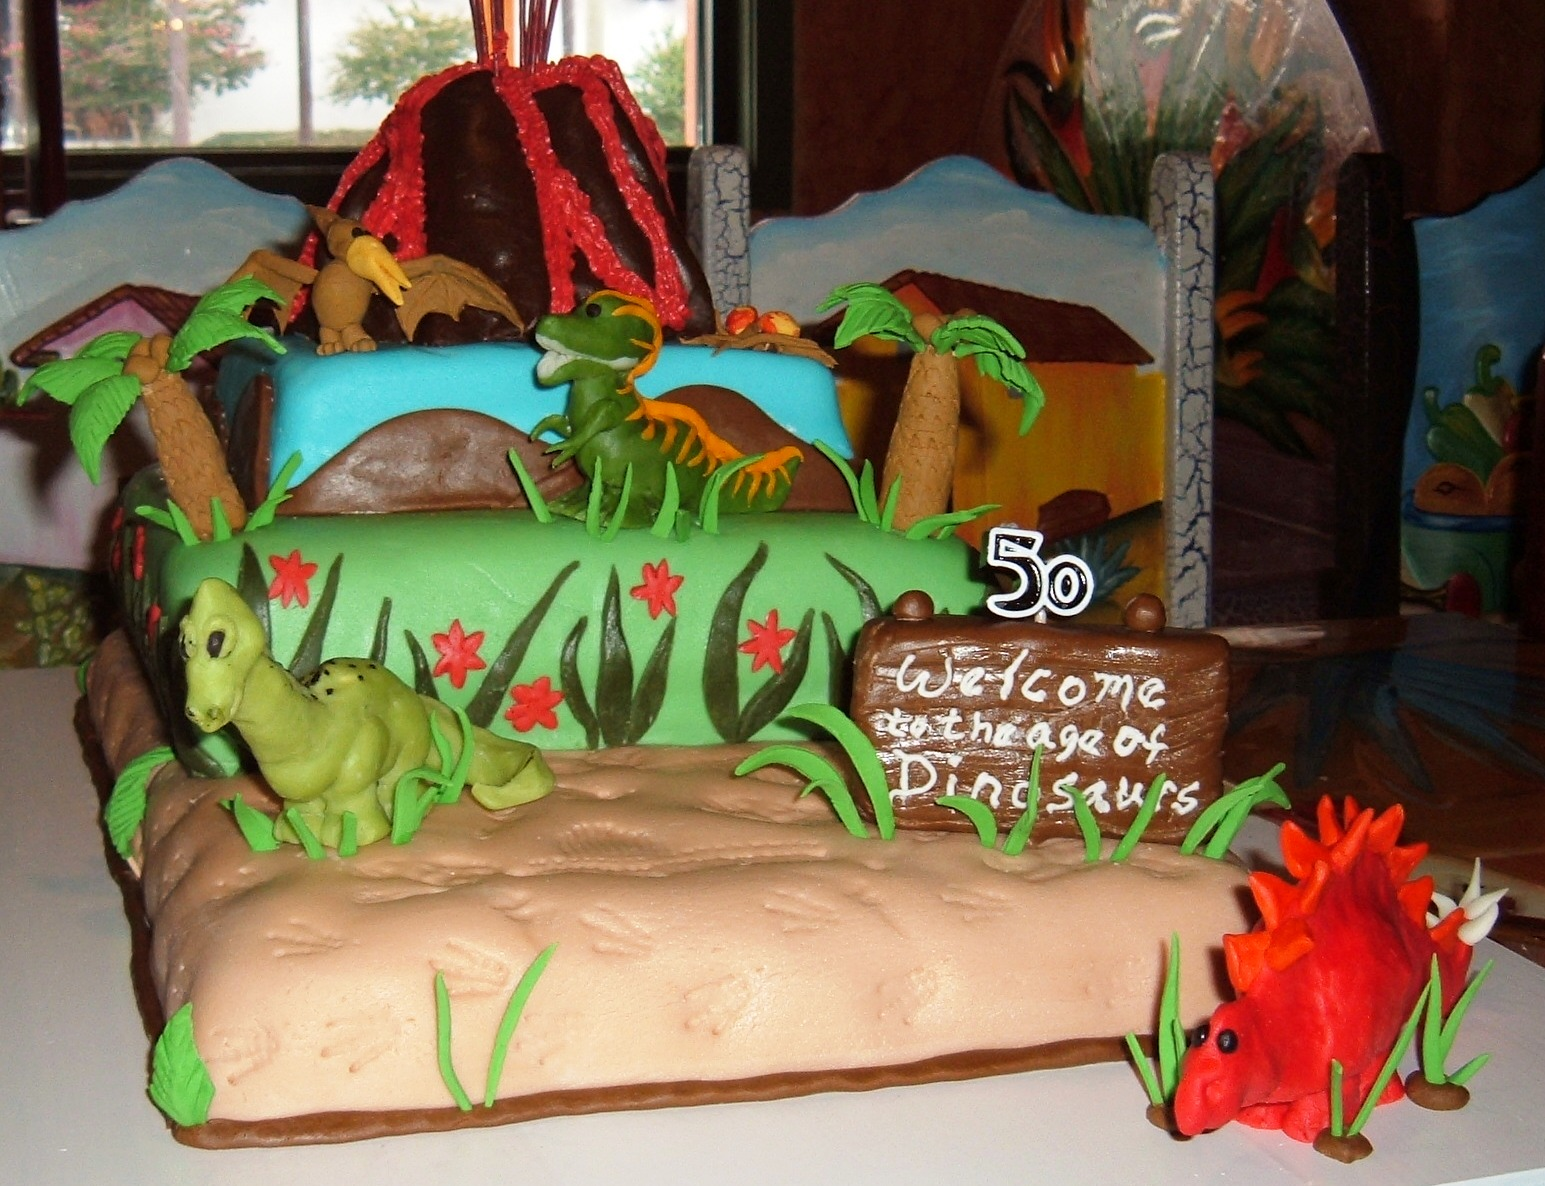 Maysie Maes Signature Cake Design Age Of Dinosaurs Birthday Cake